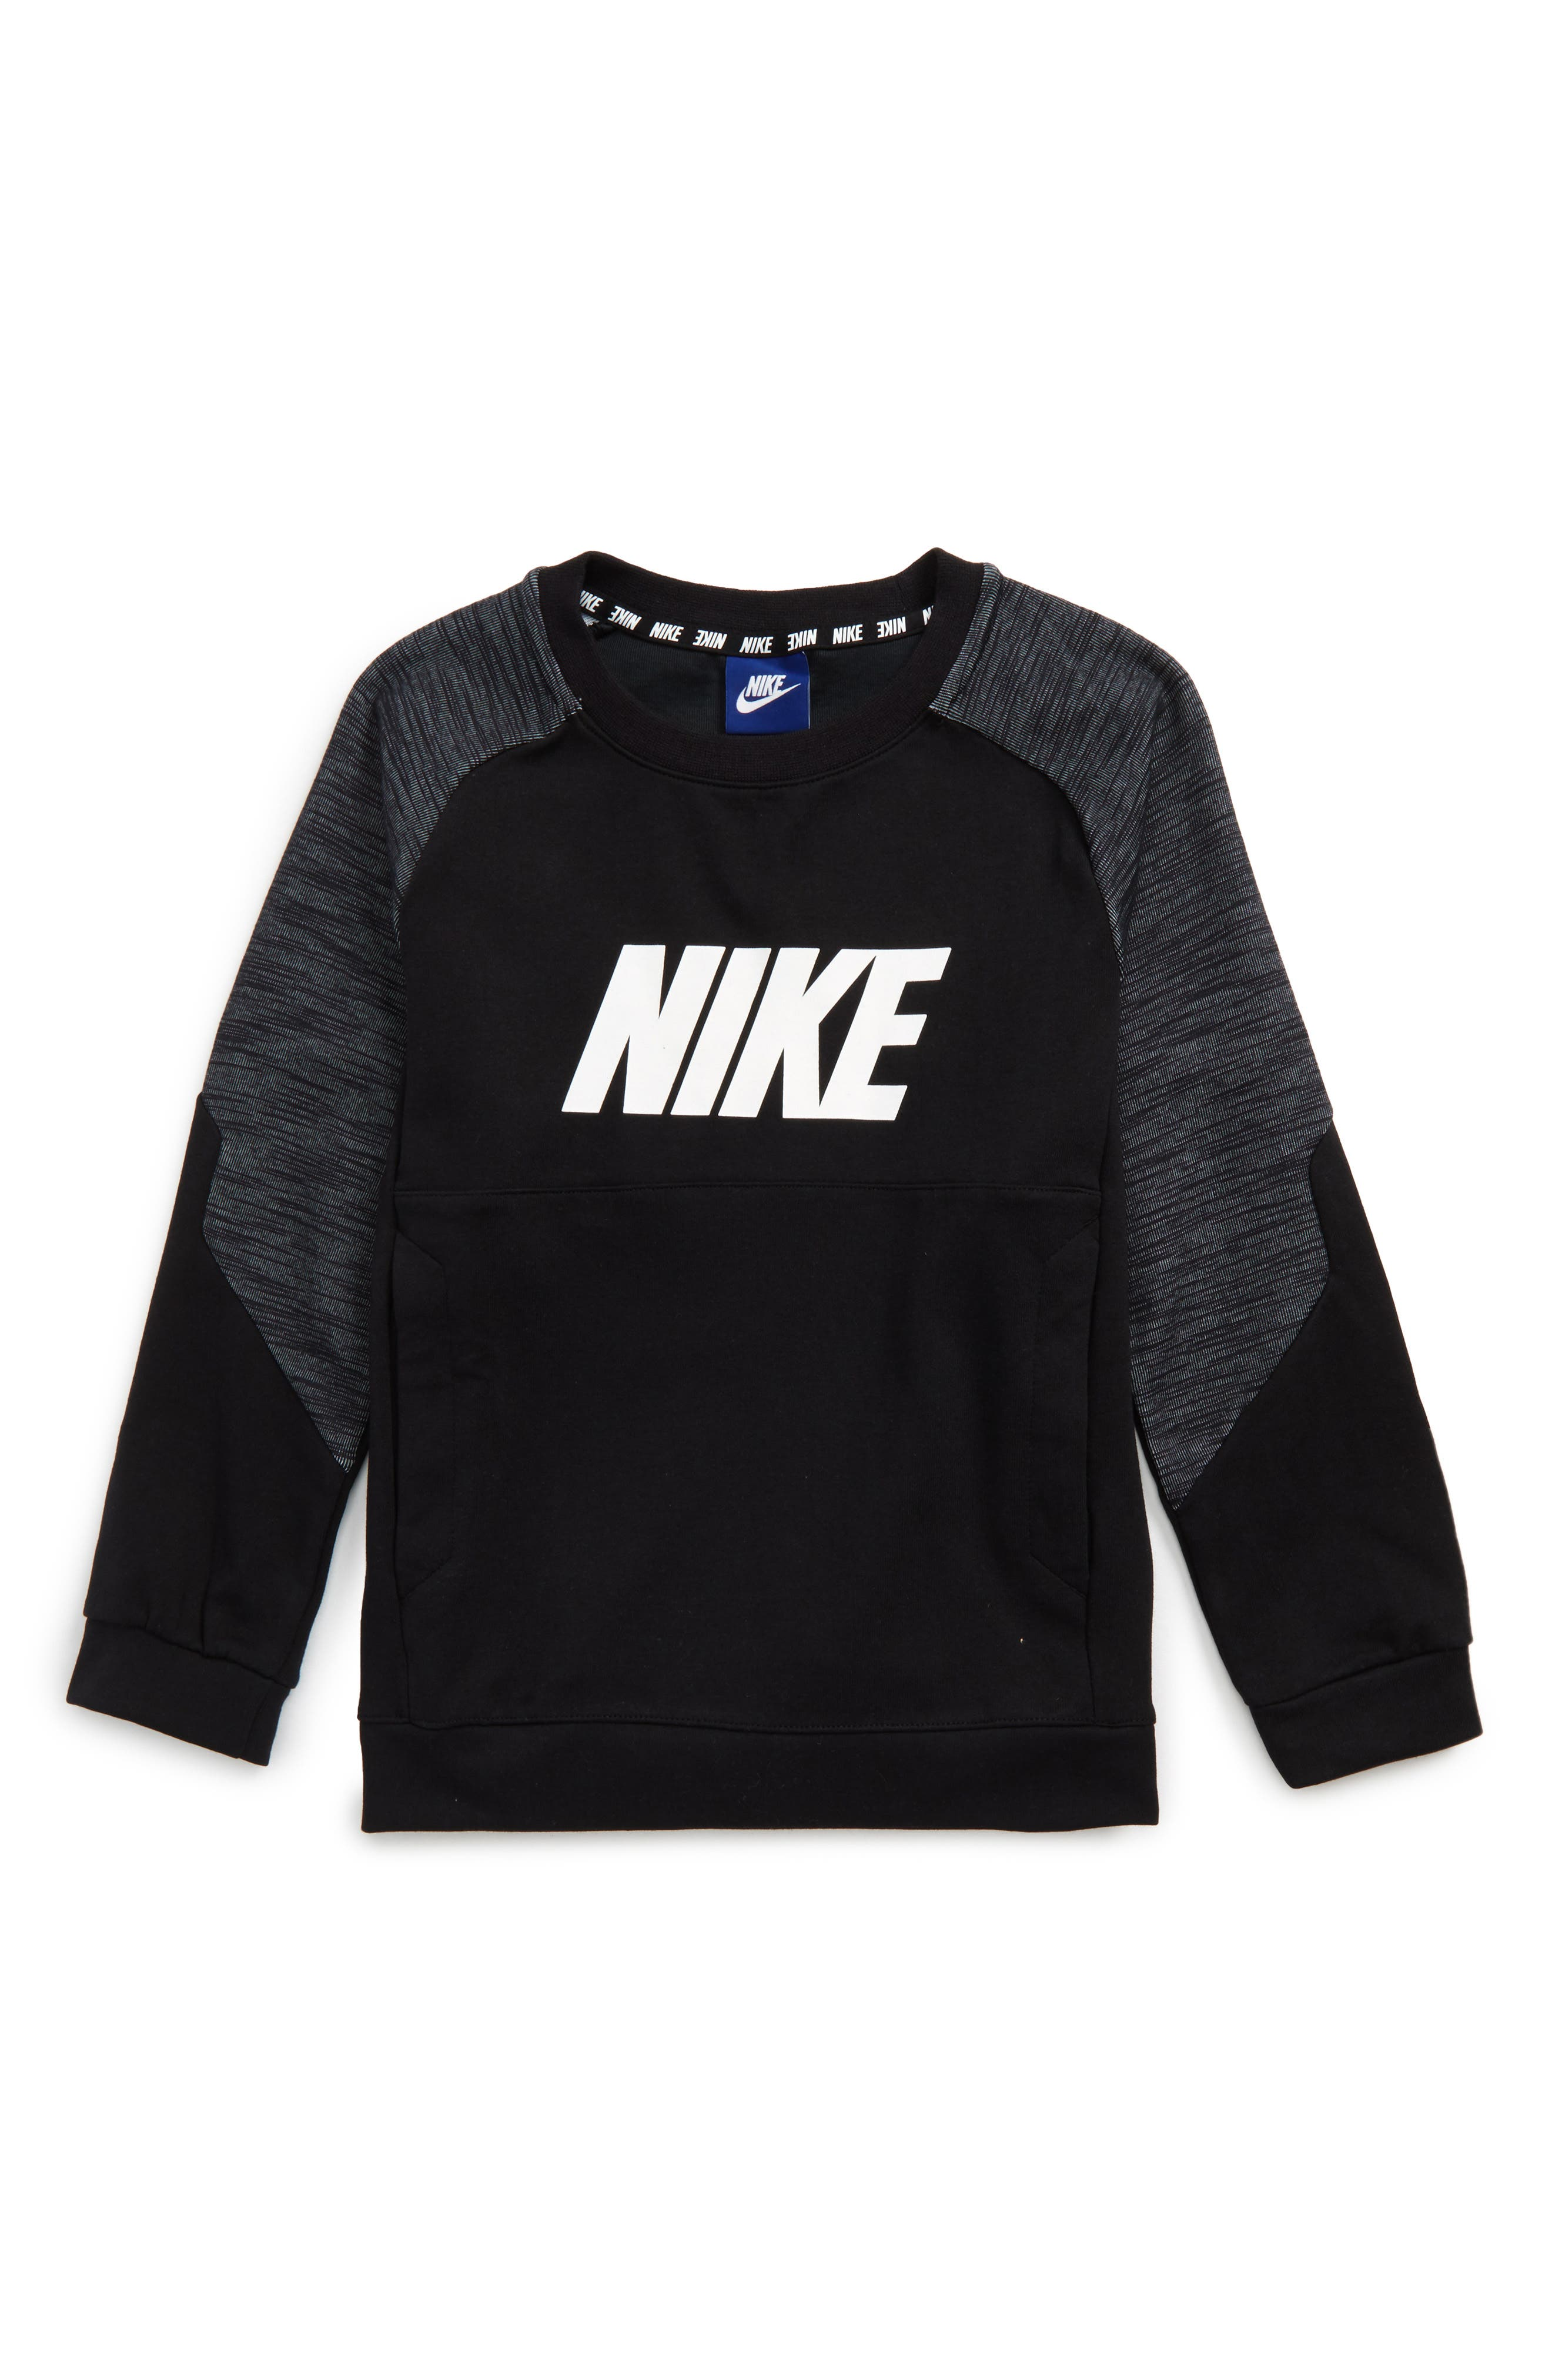 Nike Colorblock Raglan Logo Sweatshirt (Little Boys & Big Boys)